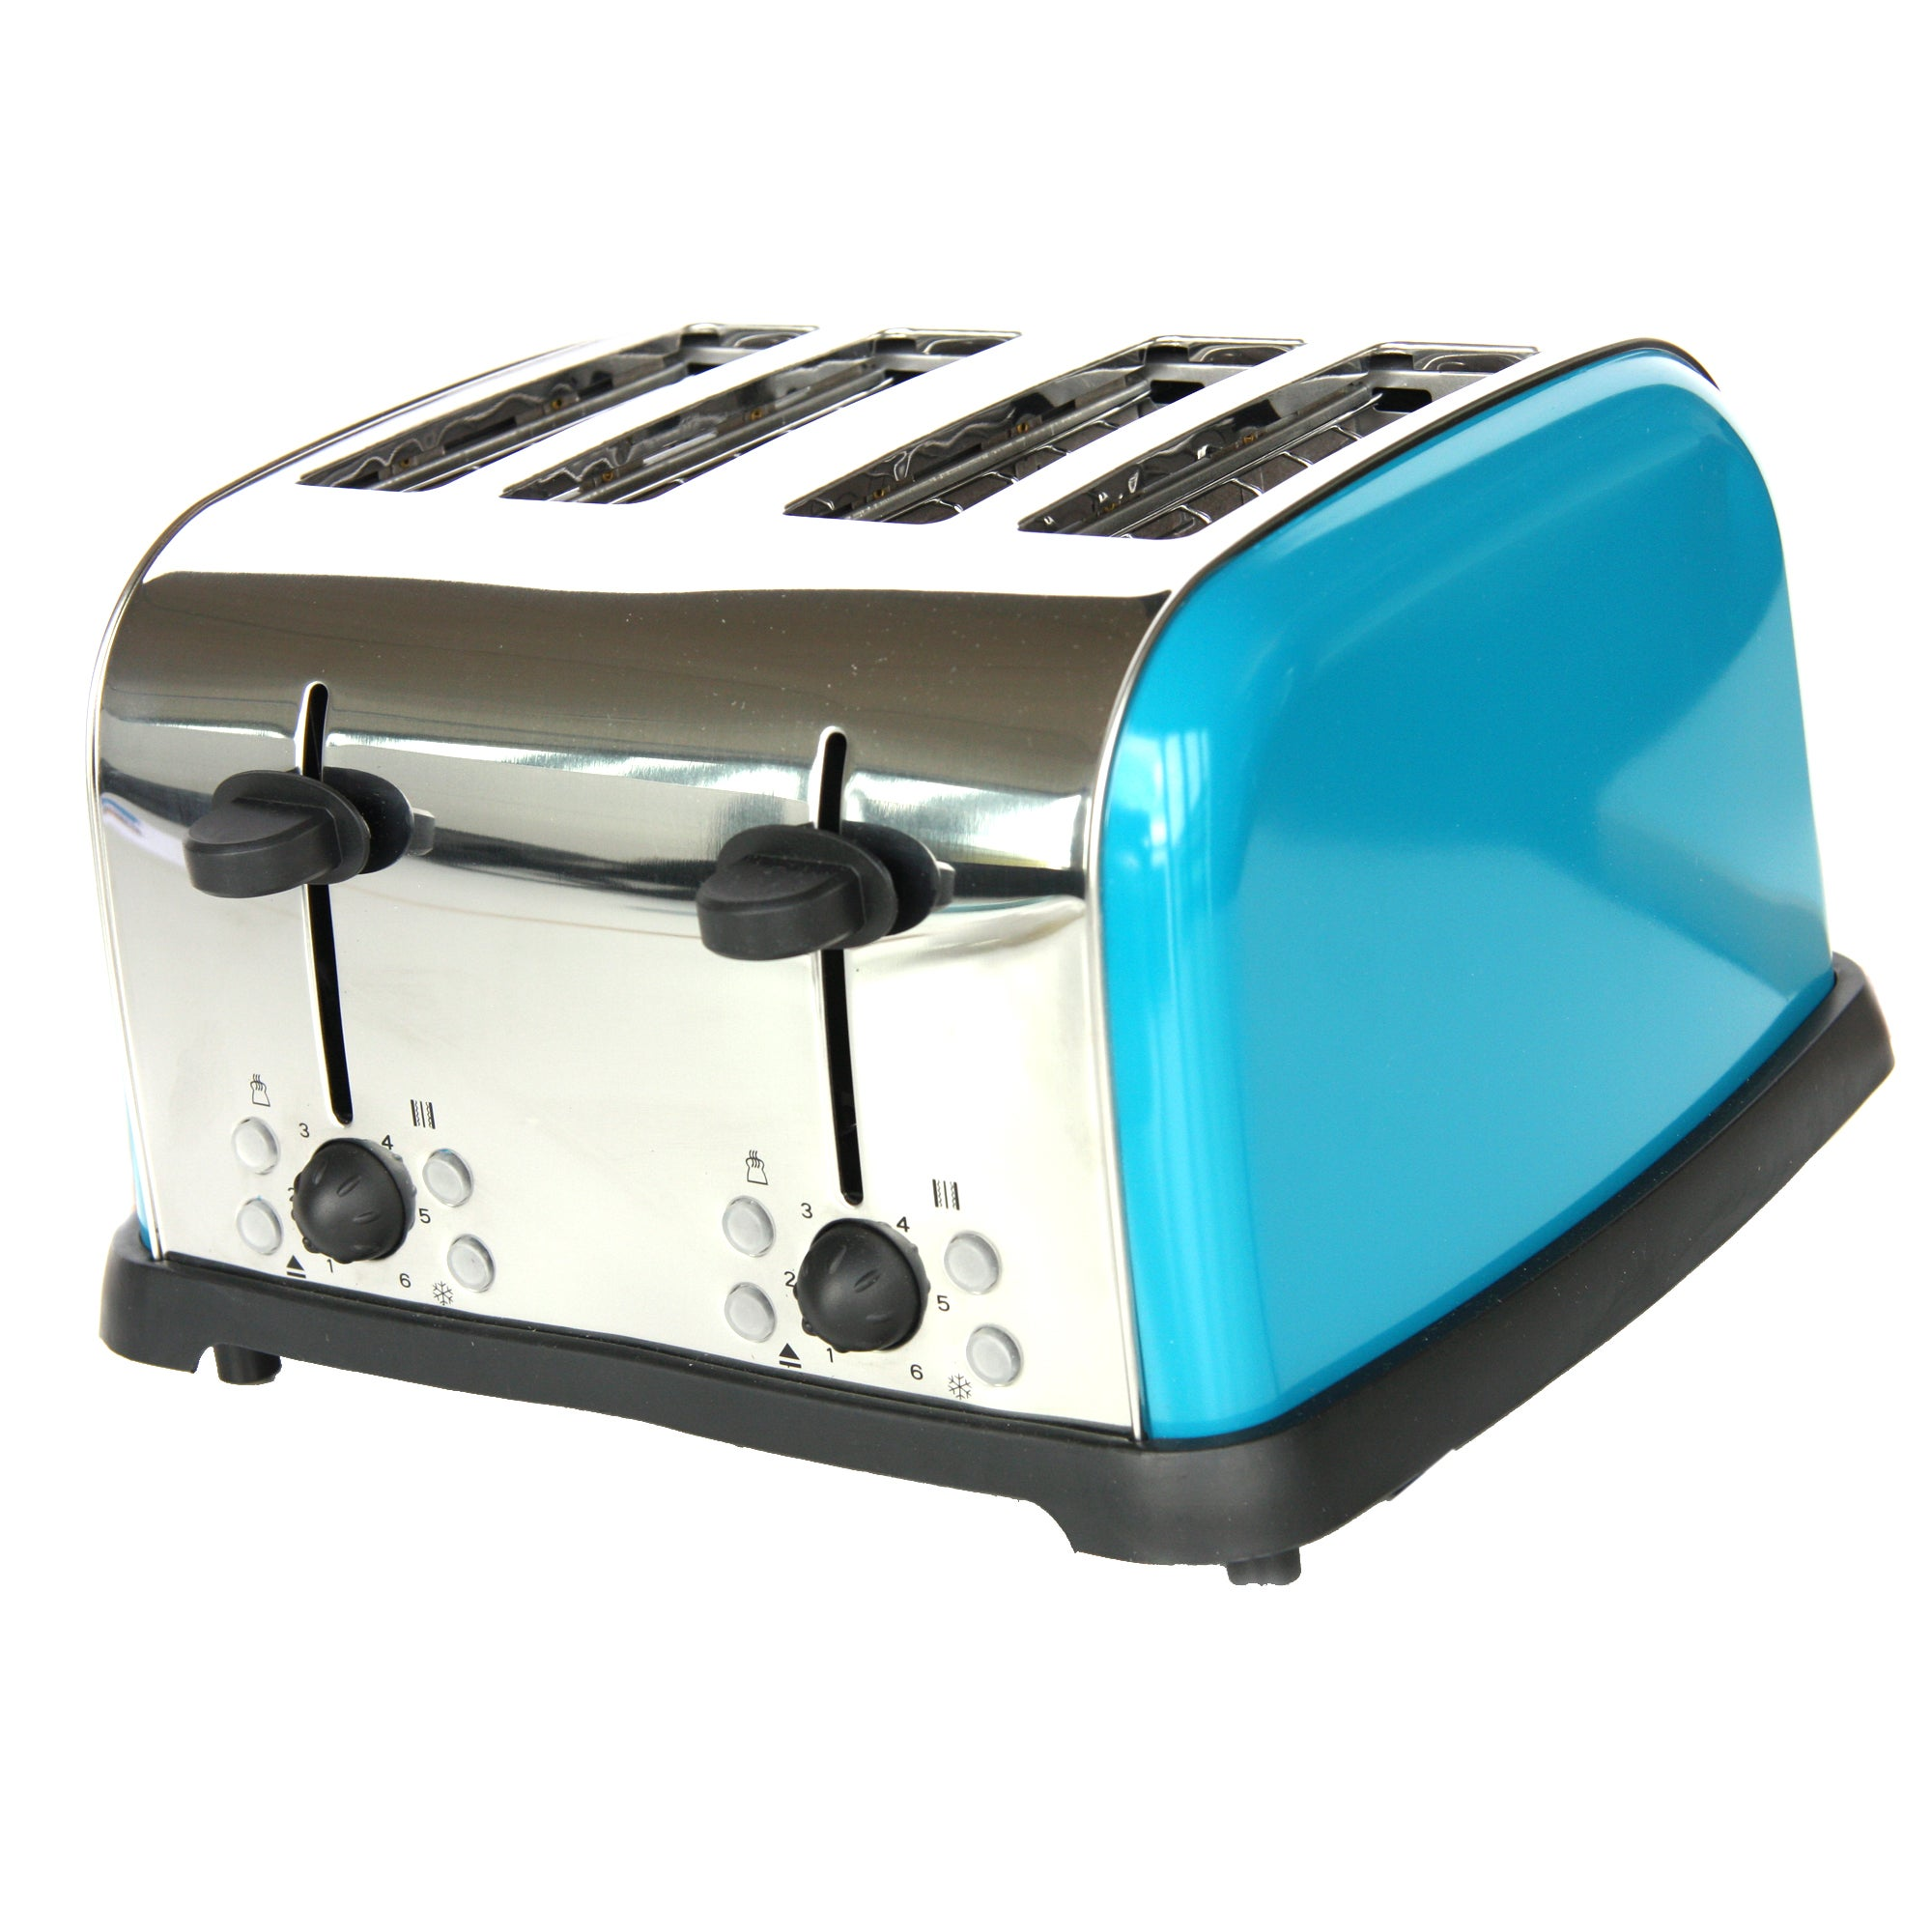 Buy Cheap 8 Slice Toaster Compare Toasters Prices For